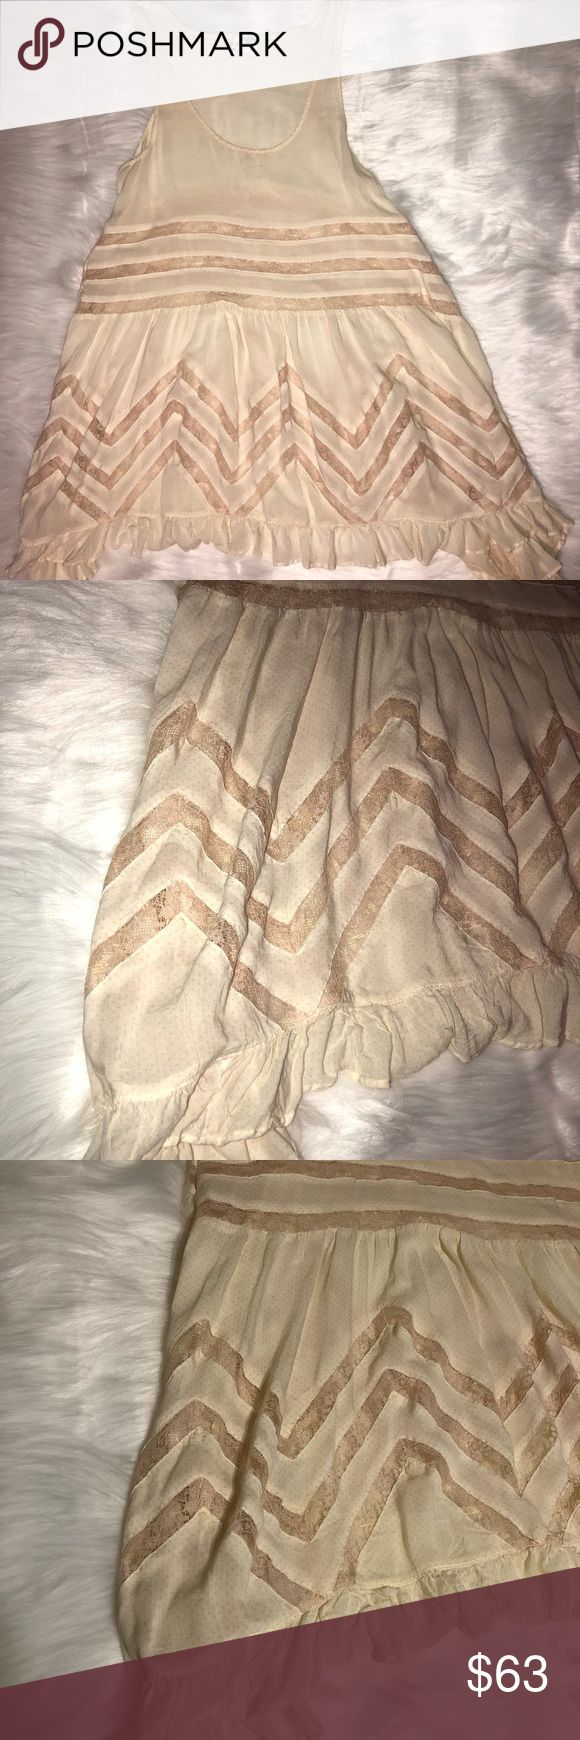 Free People Trapeze Slip Free People Trapeze Slip Size: Small Color Tea (kind of an off white with a yellow tint)  Used but in excellent condition  Lace detailing and ruffle trim Free People Dresses Mini